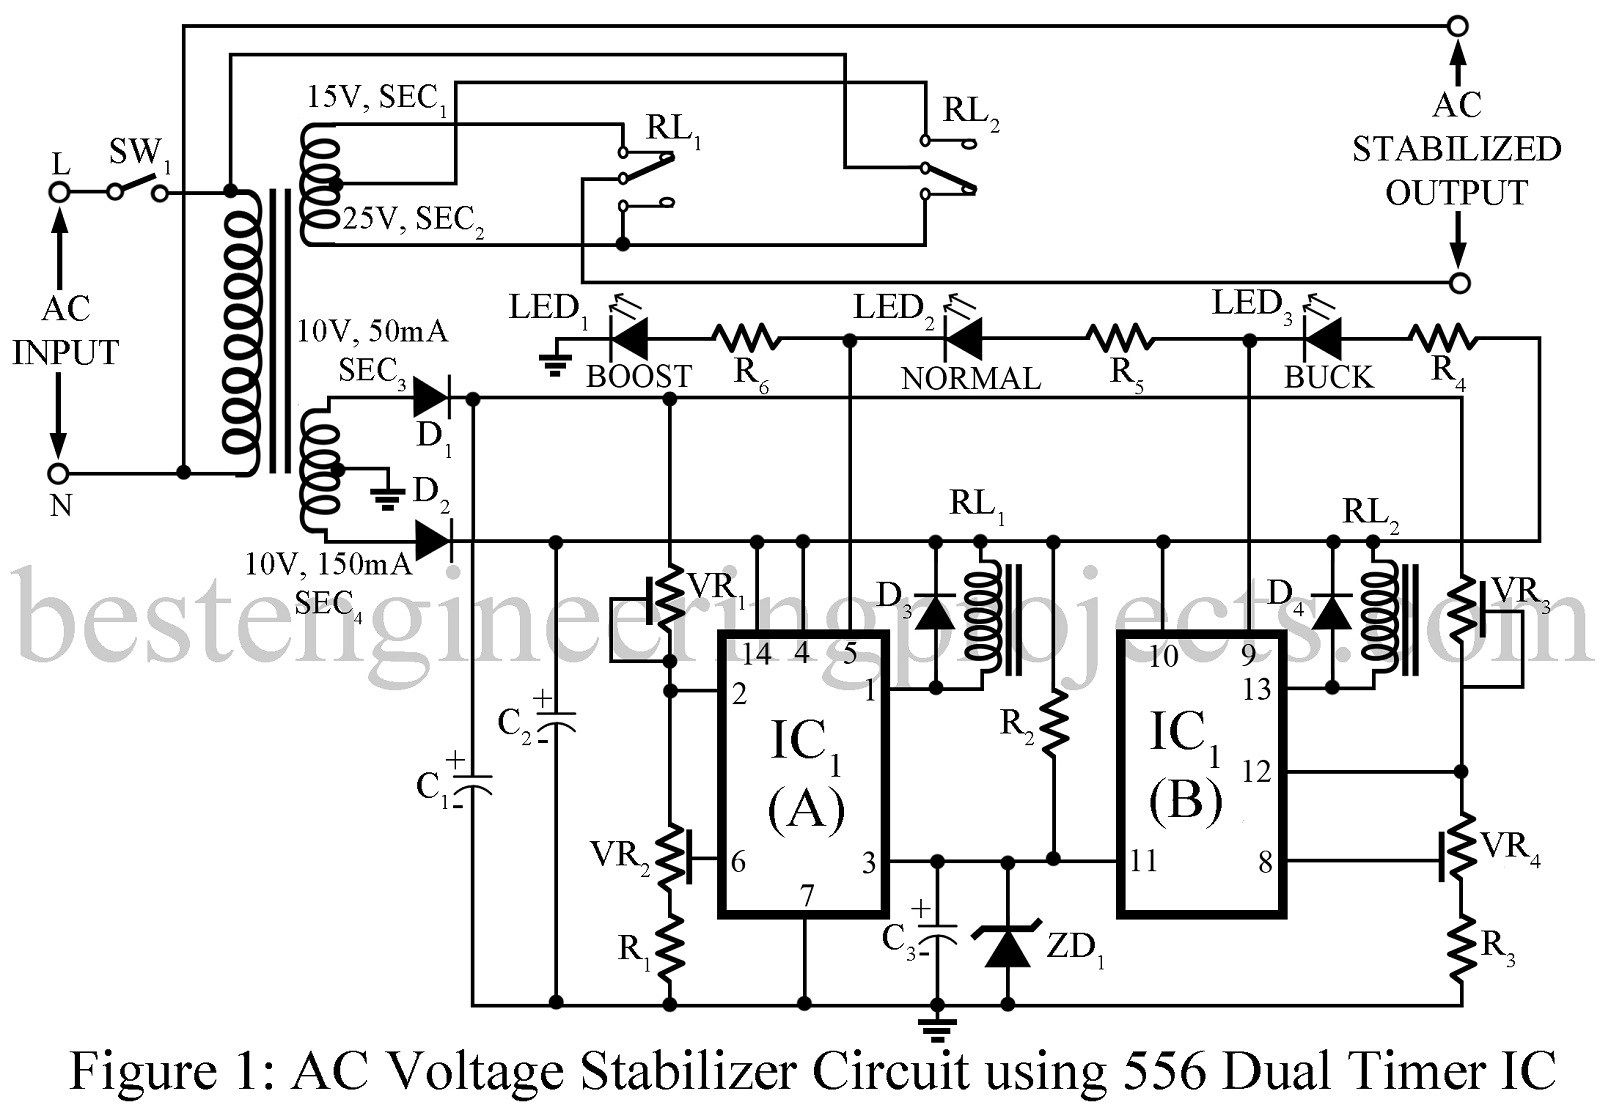 220v Ac Voltage Regulator Circuit Diagram Books Of Wiring Lm7805 Powersupplycircuit Seekiccom Stabilizer Using 556 Ic Best Engineering Rh Pinterest Com 4000w Scr